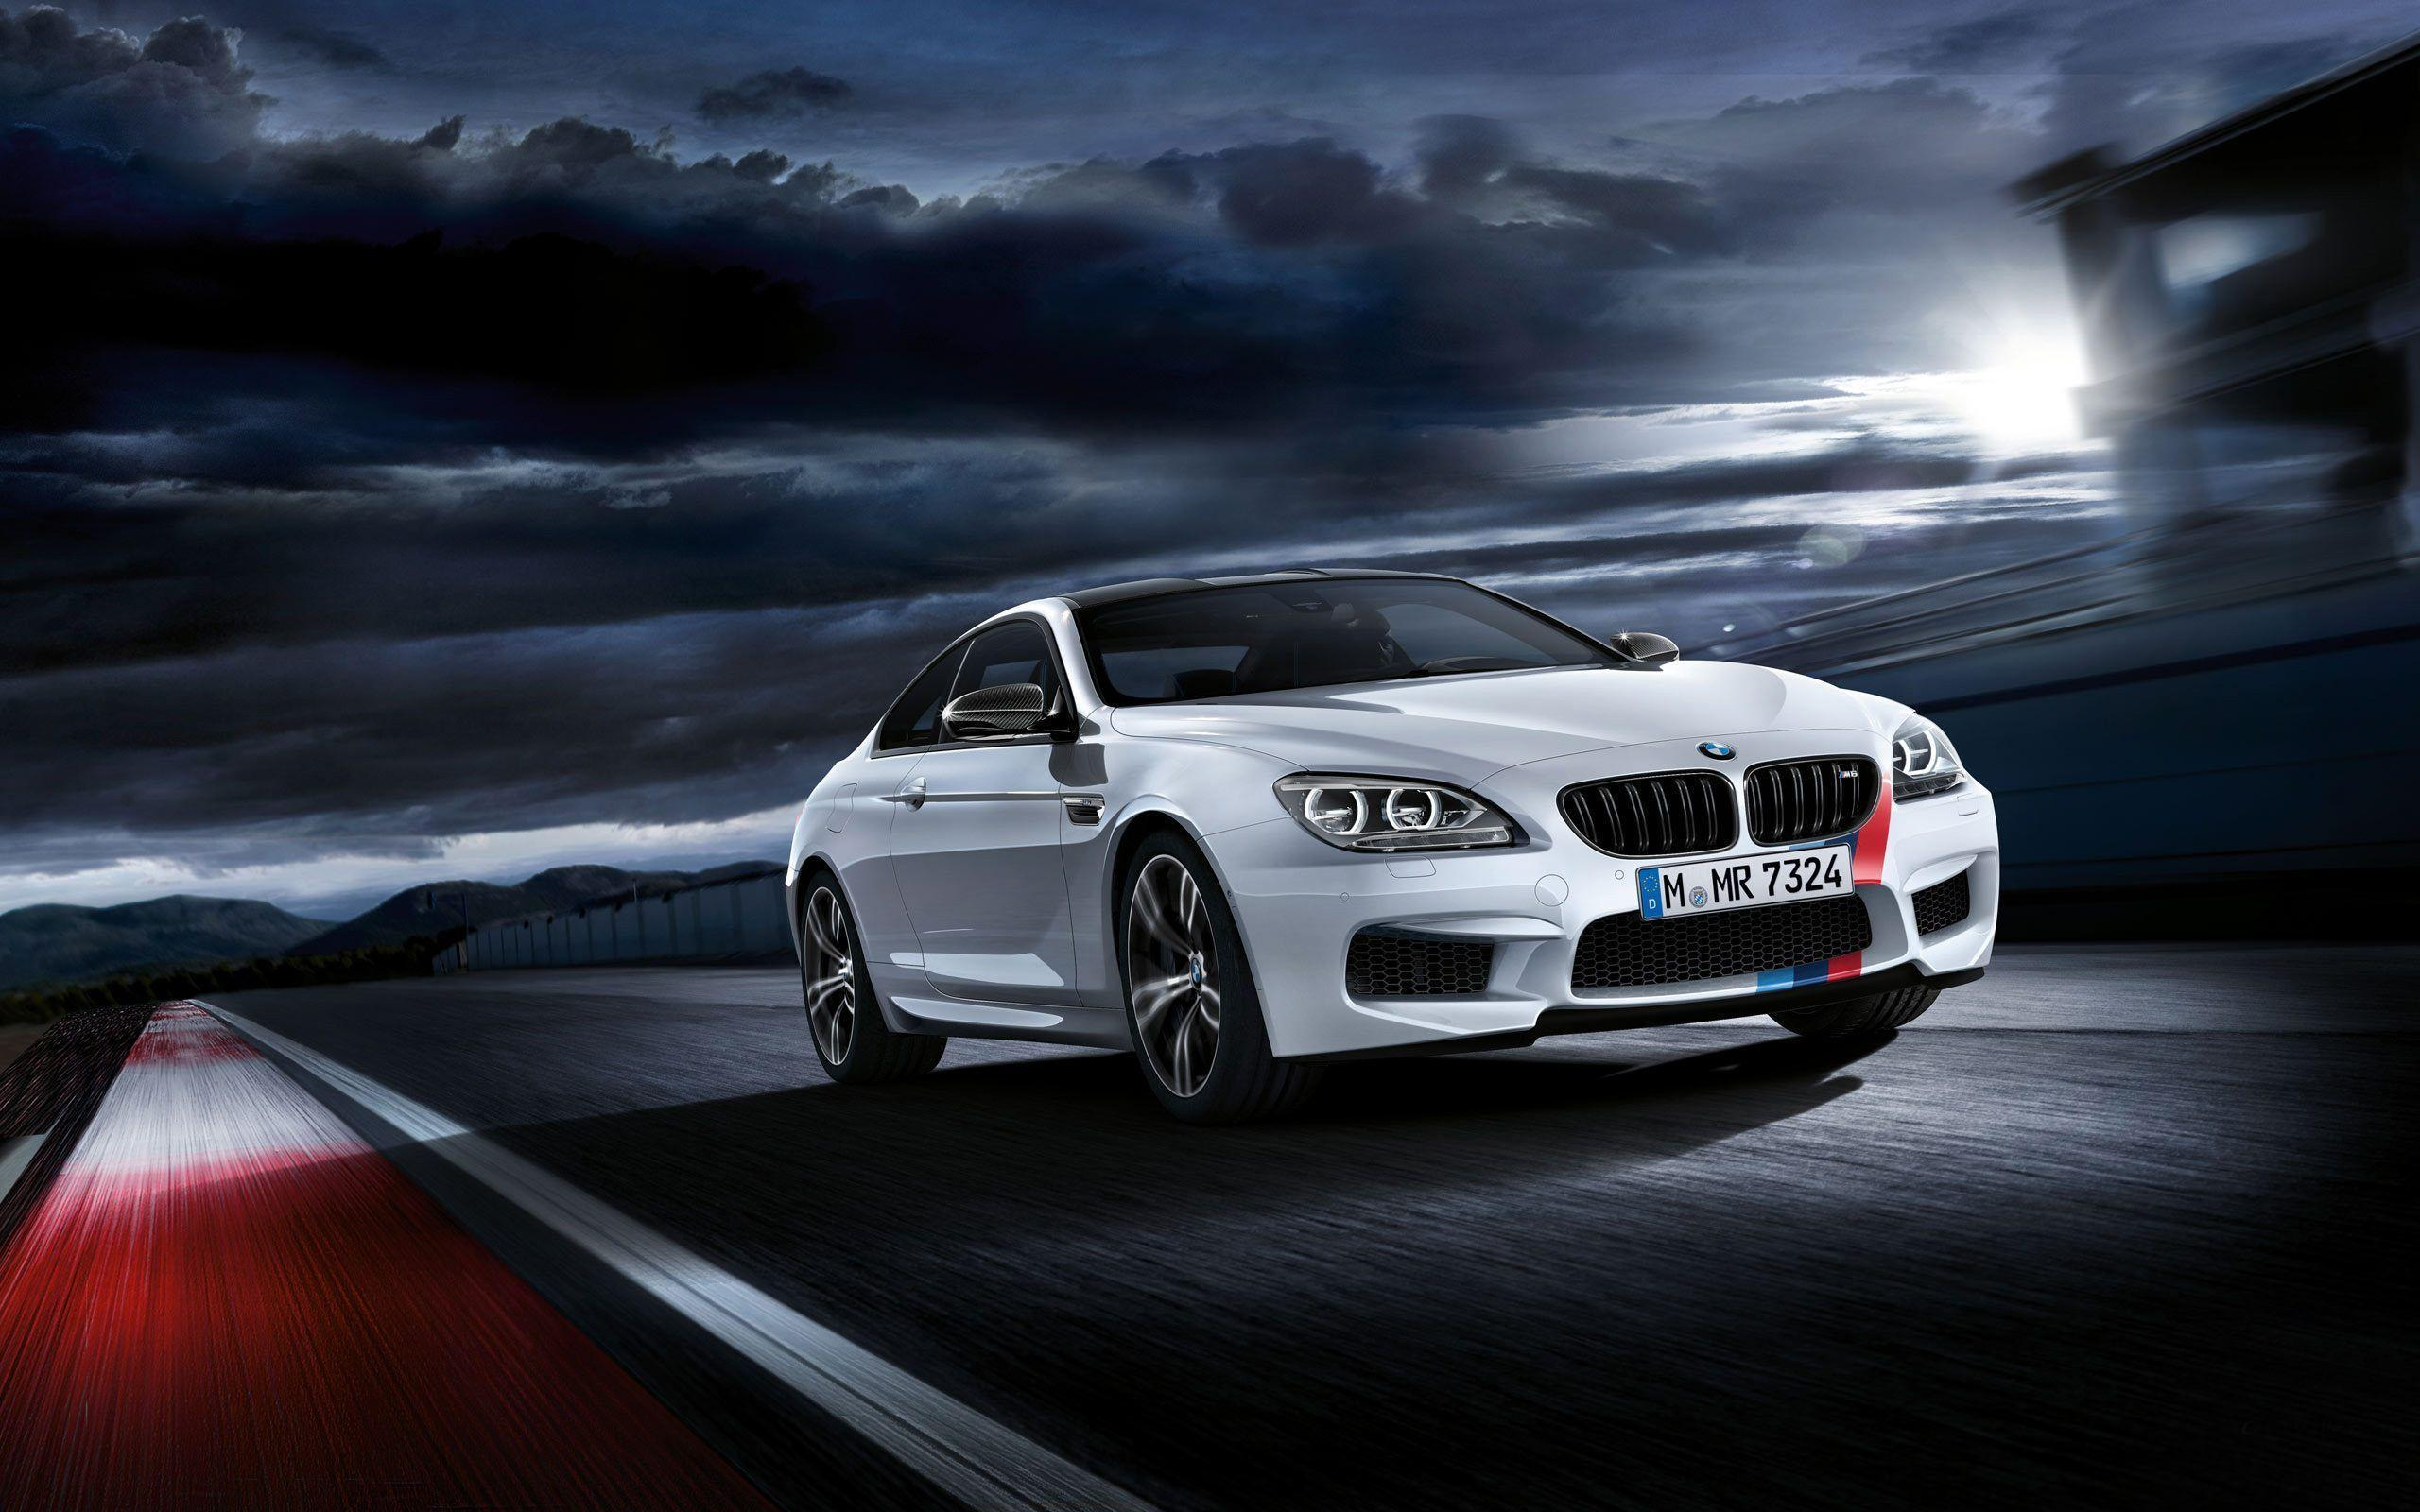 BMW Cars Wallpapers - Wallpaper Cave